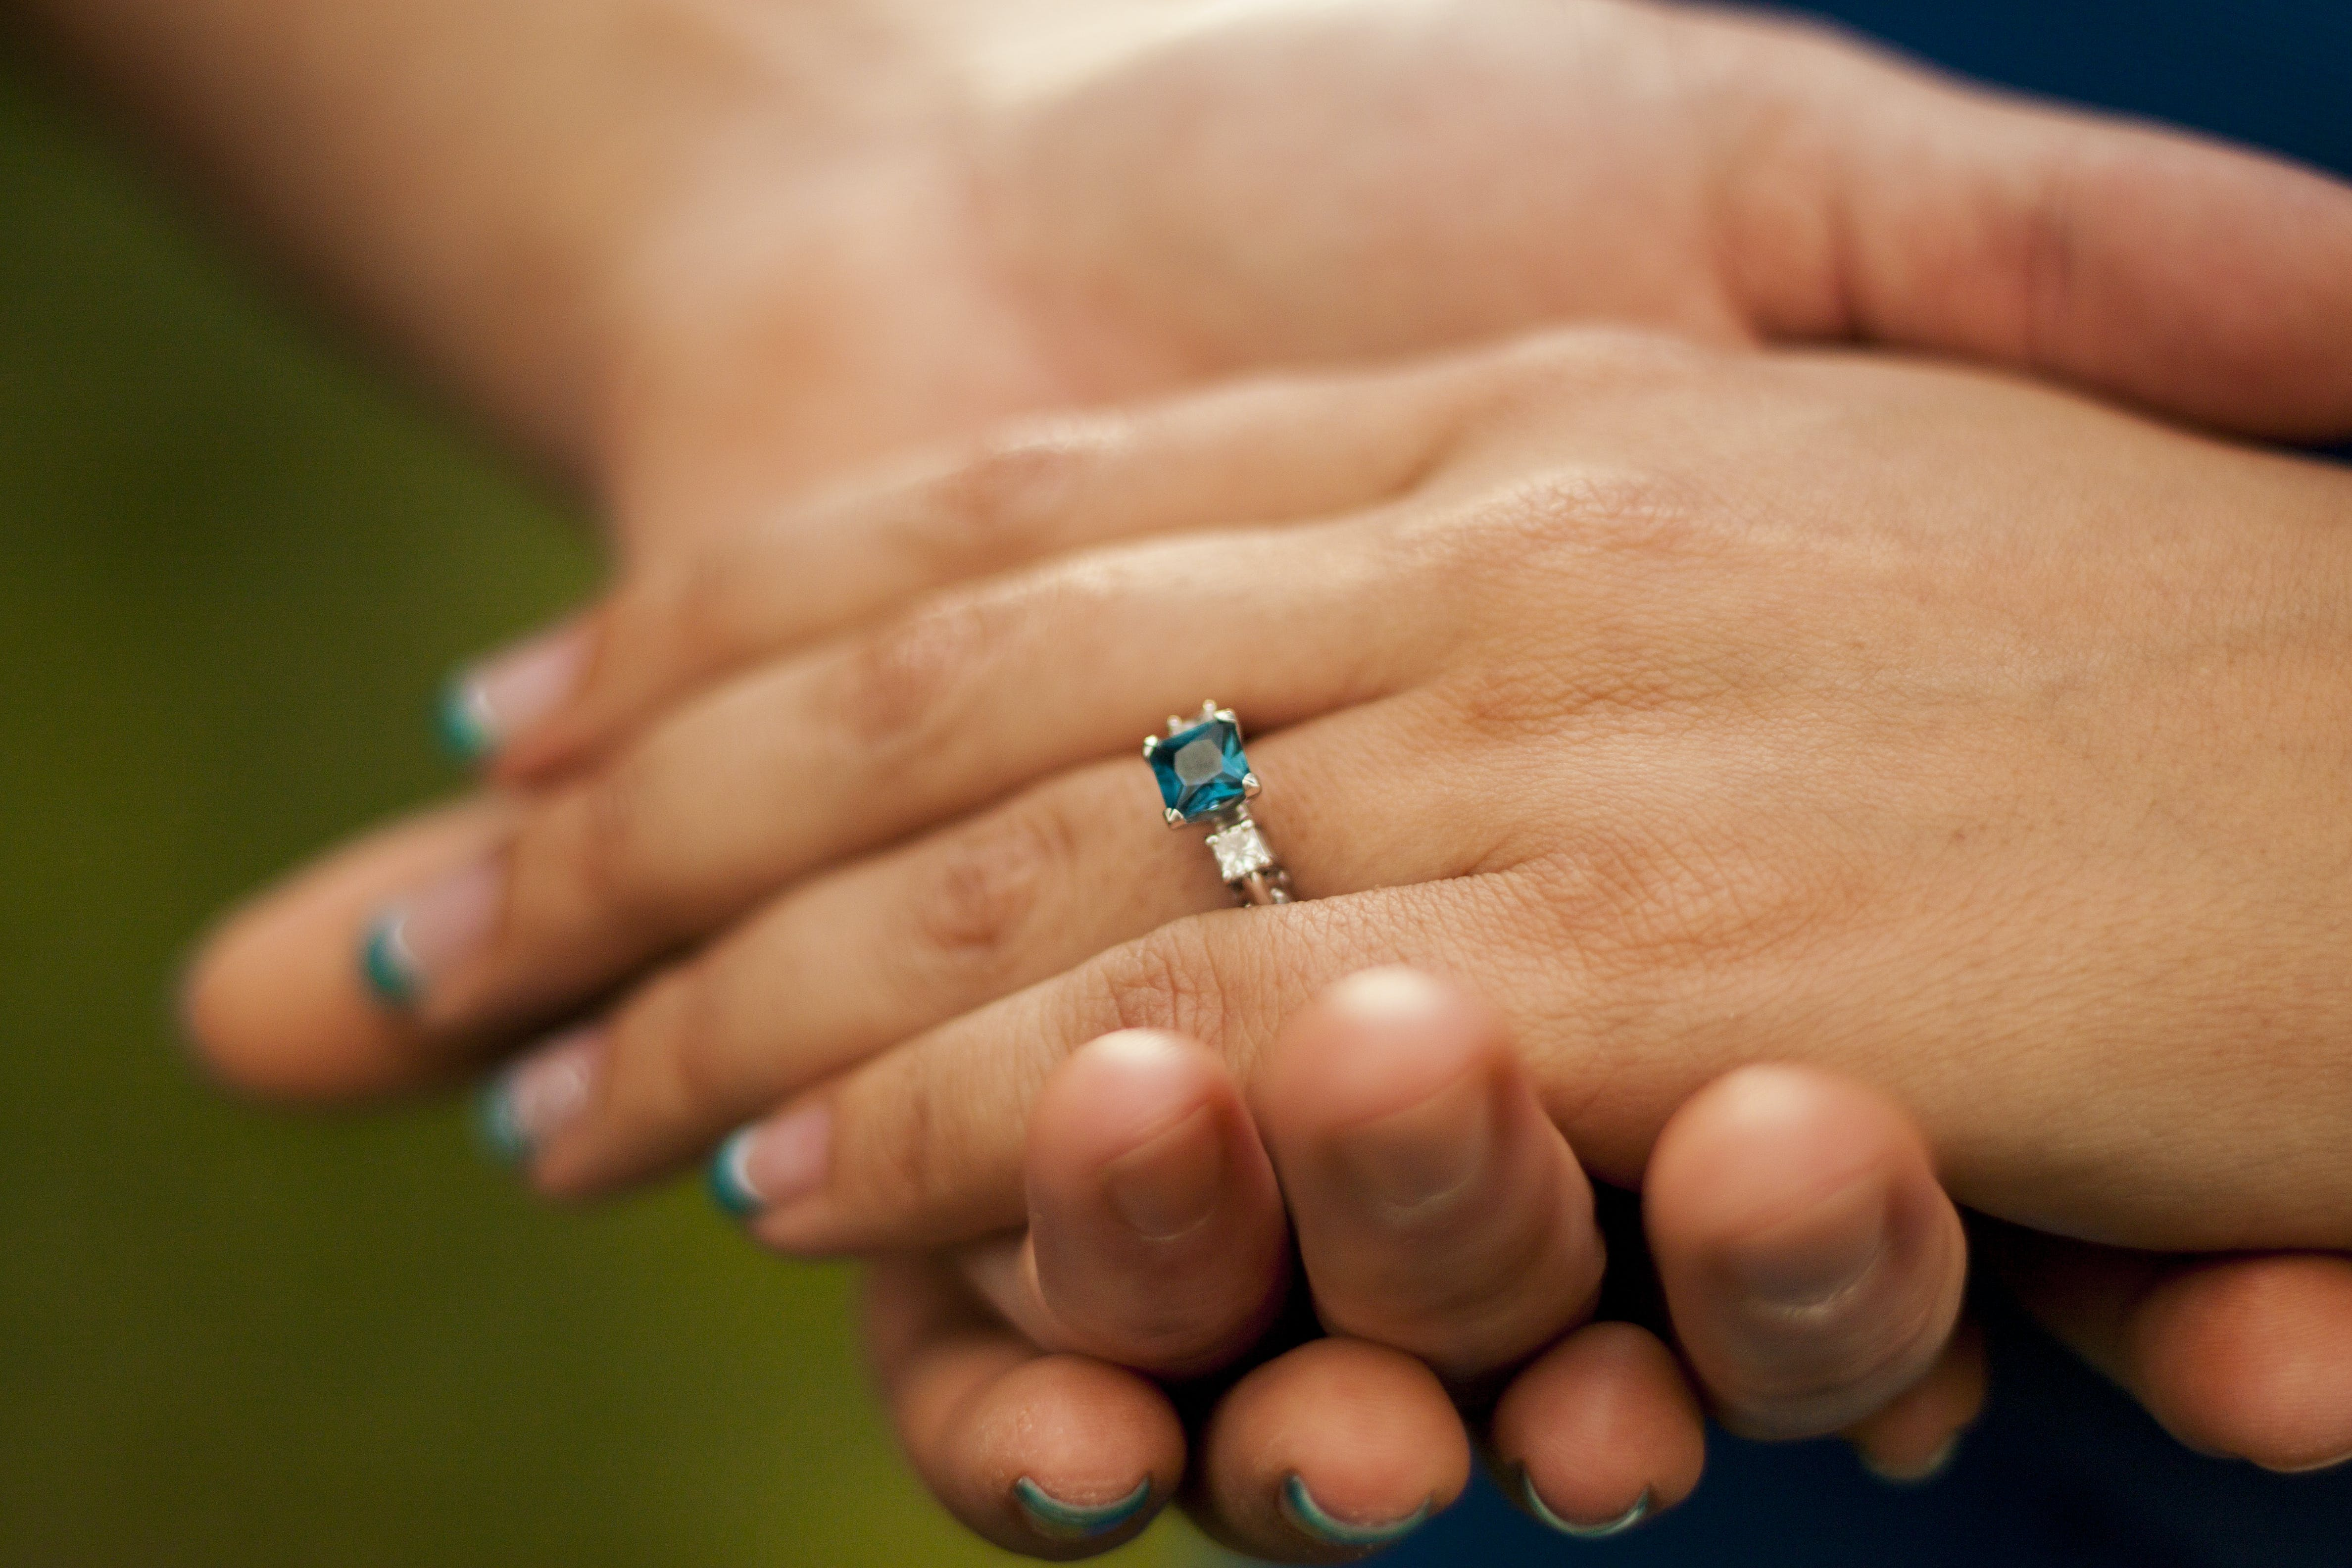 Blue ring, engagement ring, holding hands